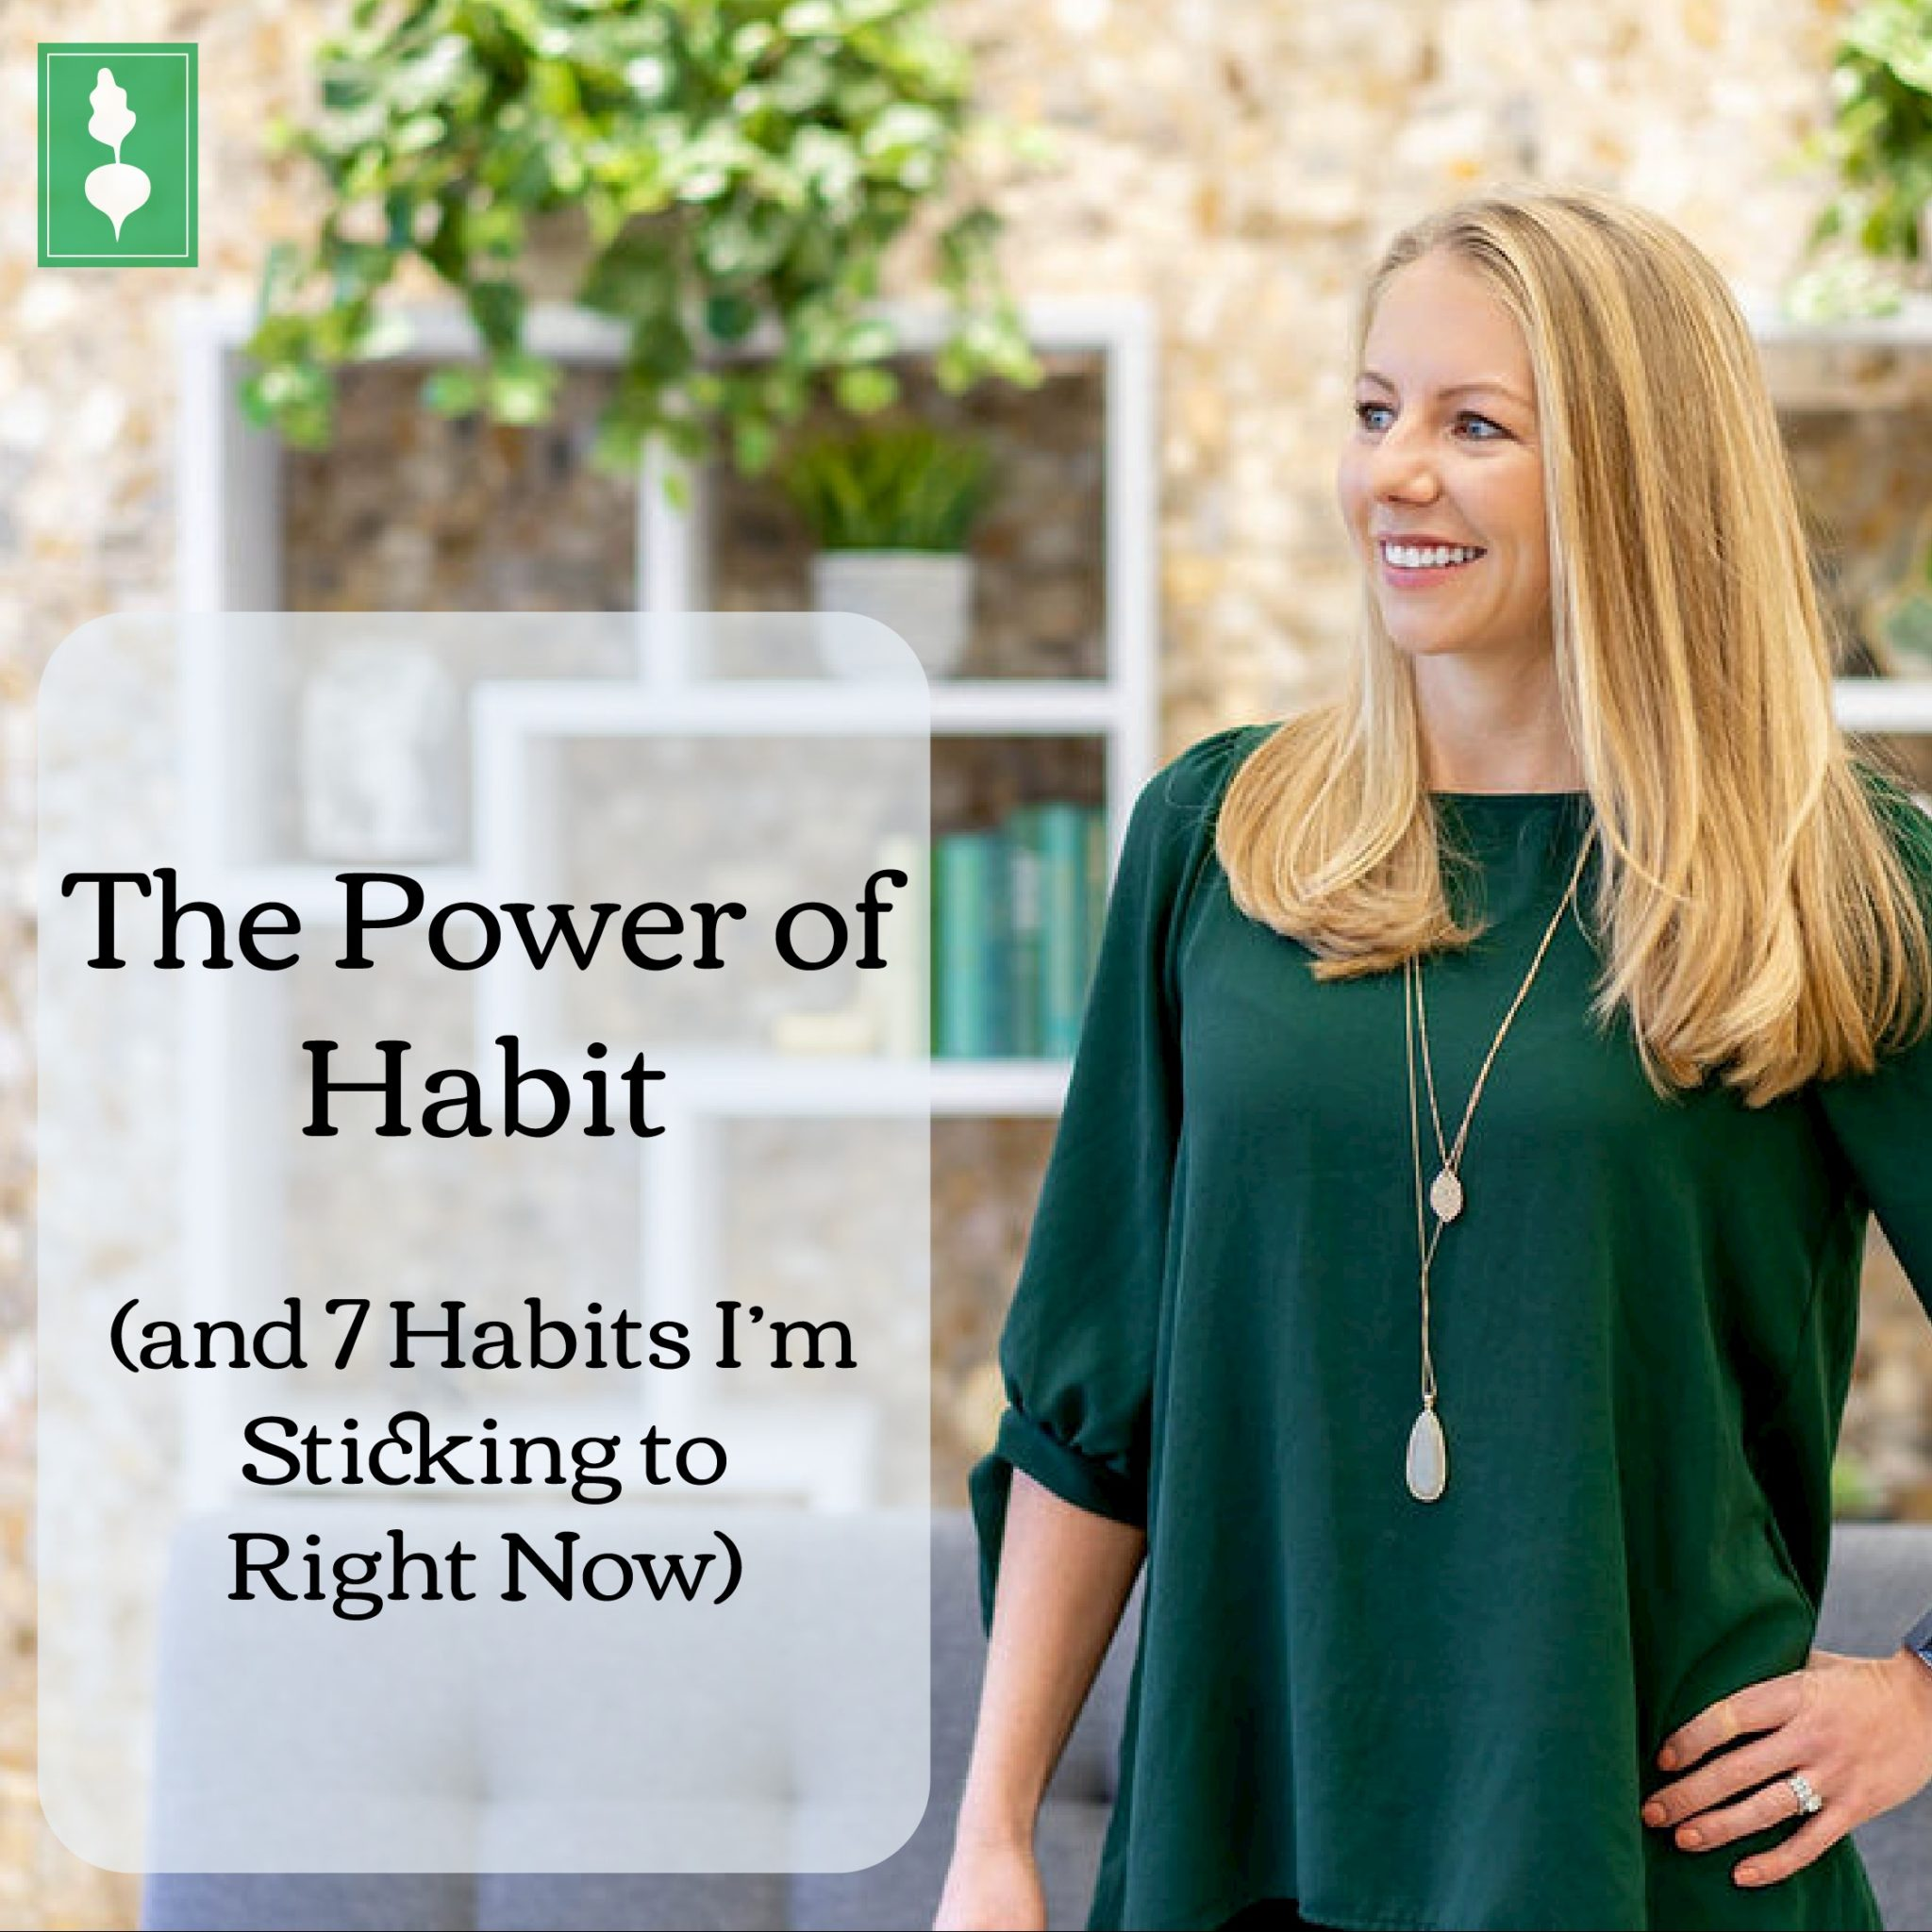 The Power of Habit (and 7 Habits I'm Sticking to Right Now)